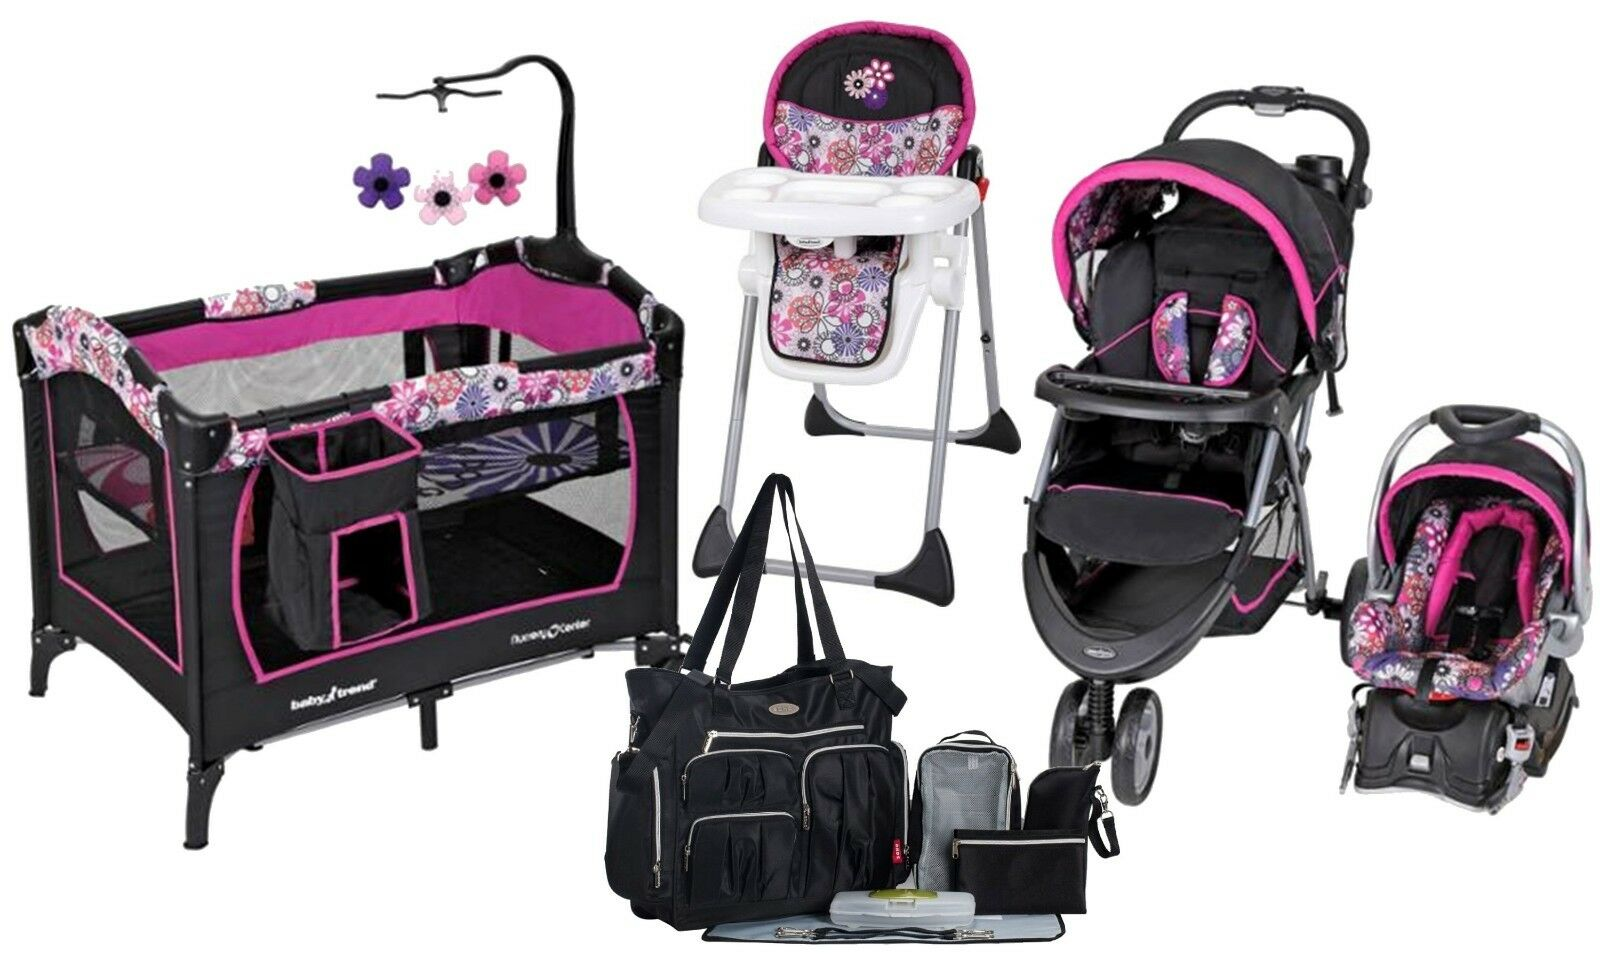 Baby Trend Stroller with Car Seat Playard High Chair Diaper